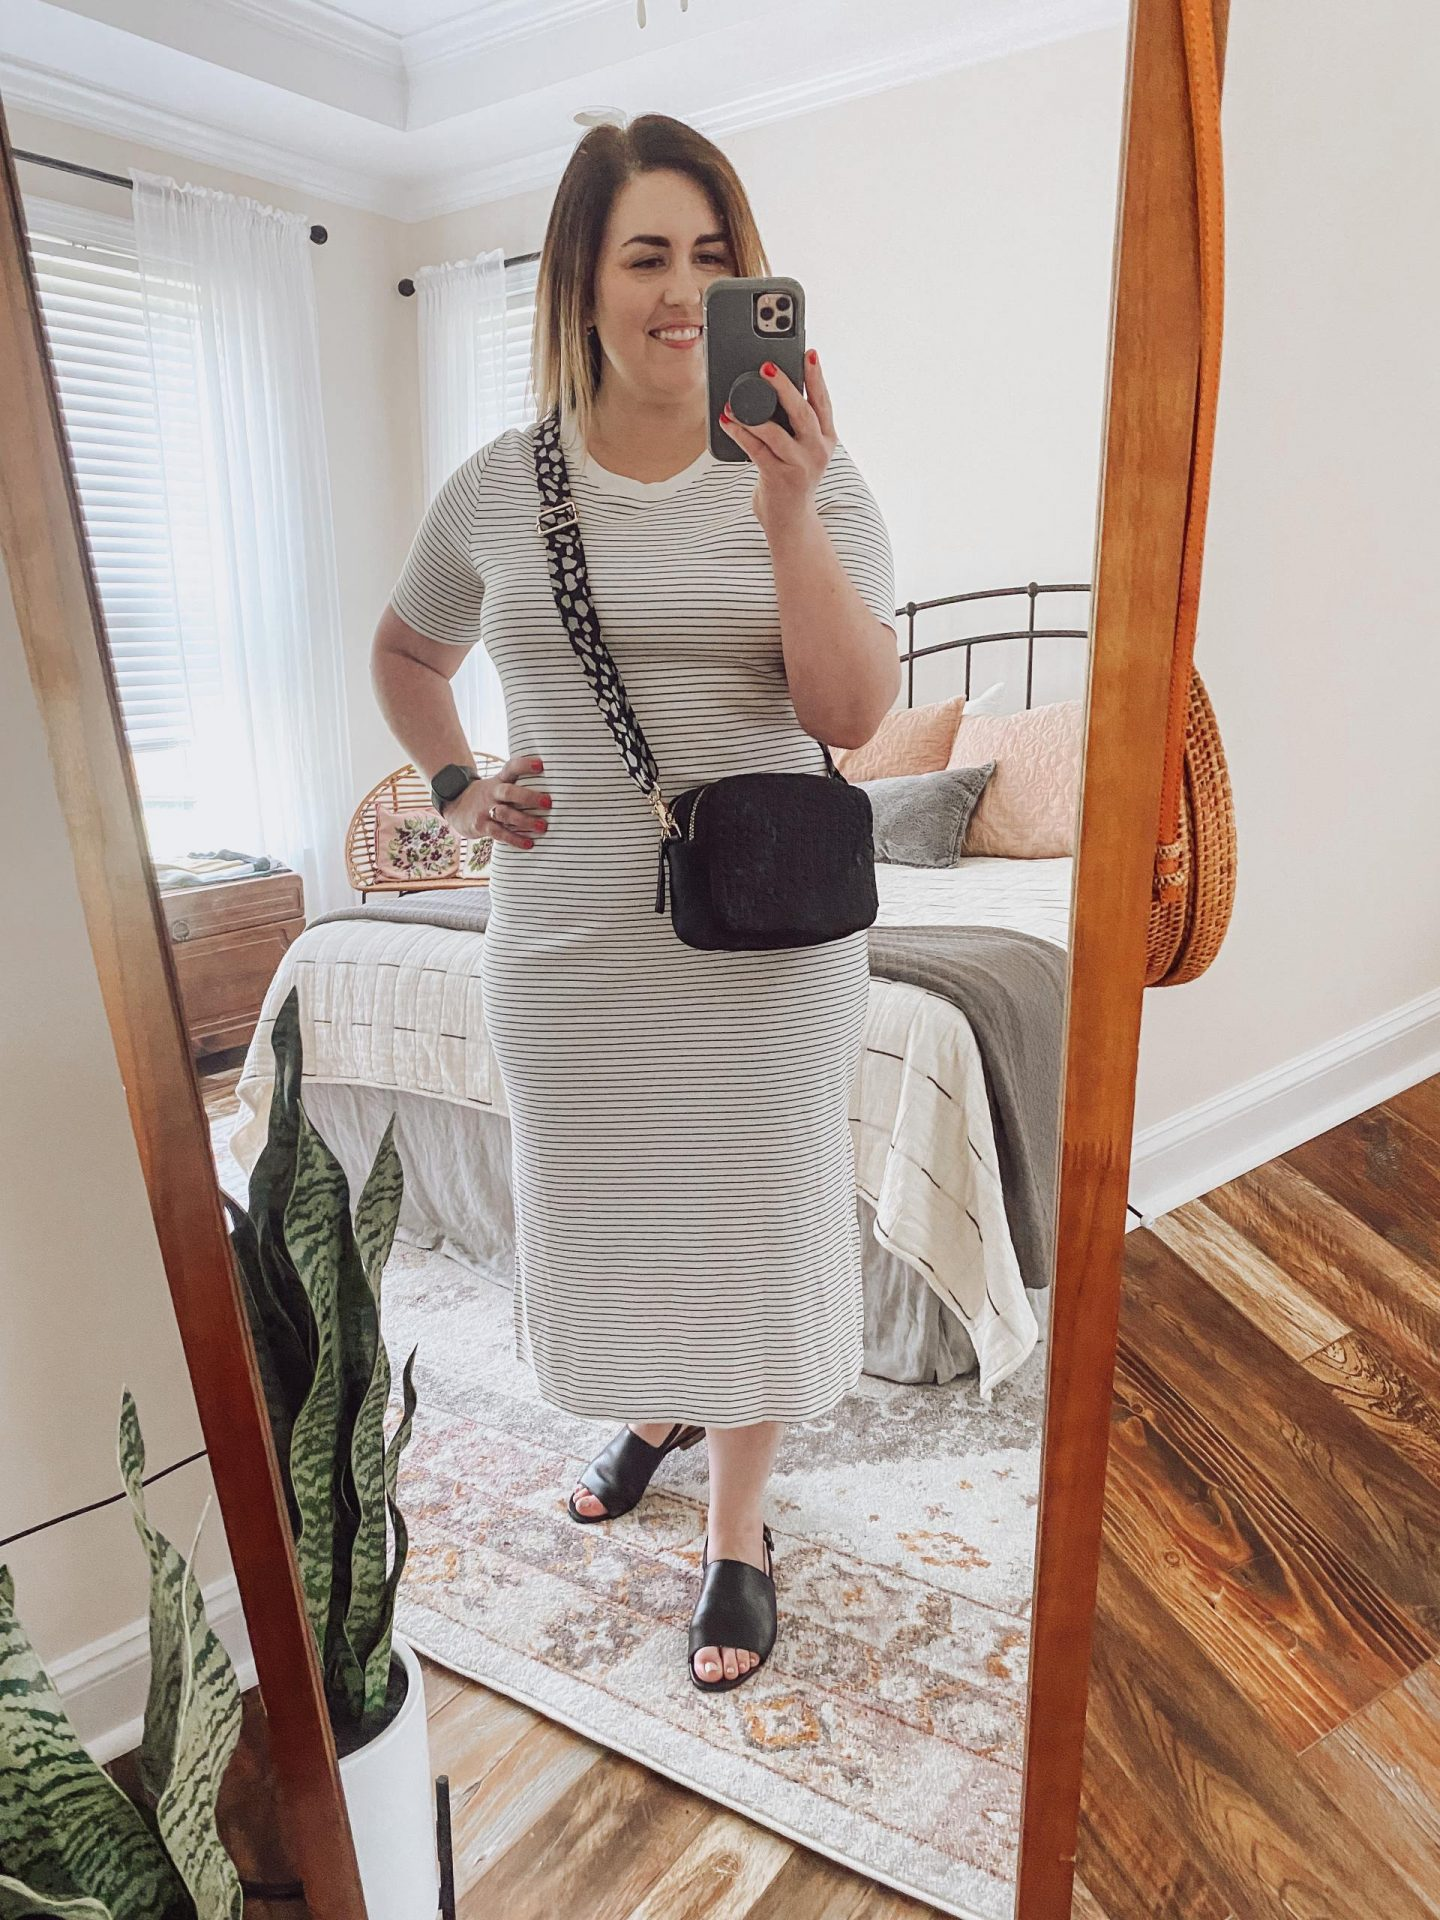 NC blogger Rebecca Lately is sharing her favorite summer bags. You don't need a ton of bags, and these classic styles will last for years!